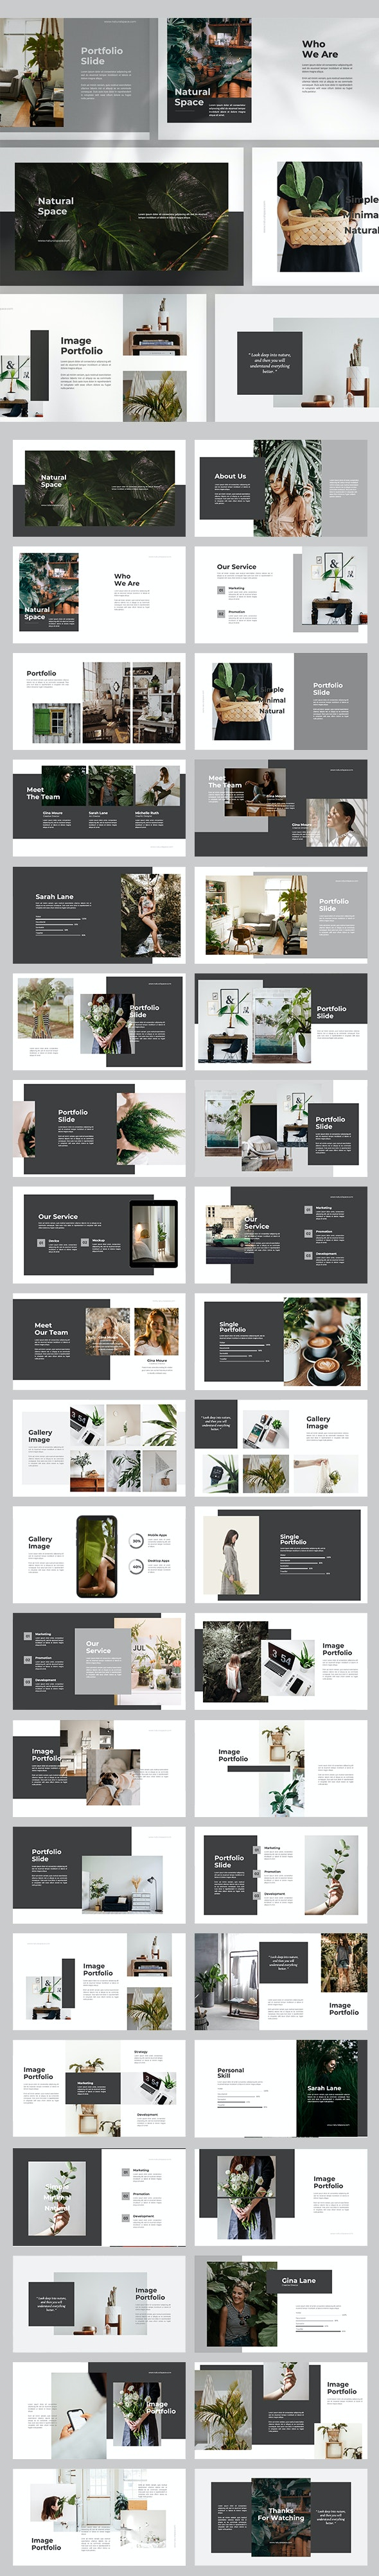 Natural Space Powerpoint Template - Creative PowerPoint Templates